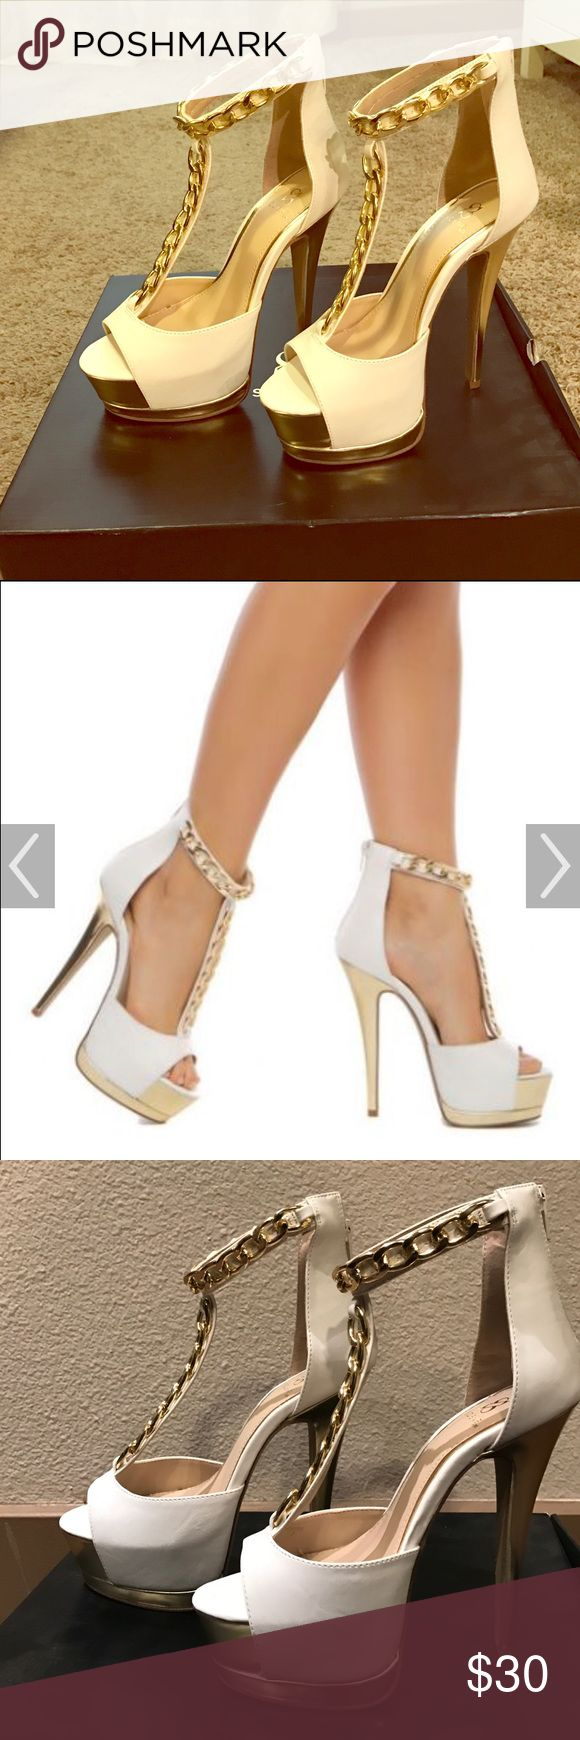 White and gold heels Open-toed white and gold high heels with ankle chain embellishment. Note the heel and the platform are very high. Brand-new never worn before. Shoe Dazzle Shoes Heels